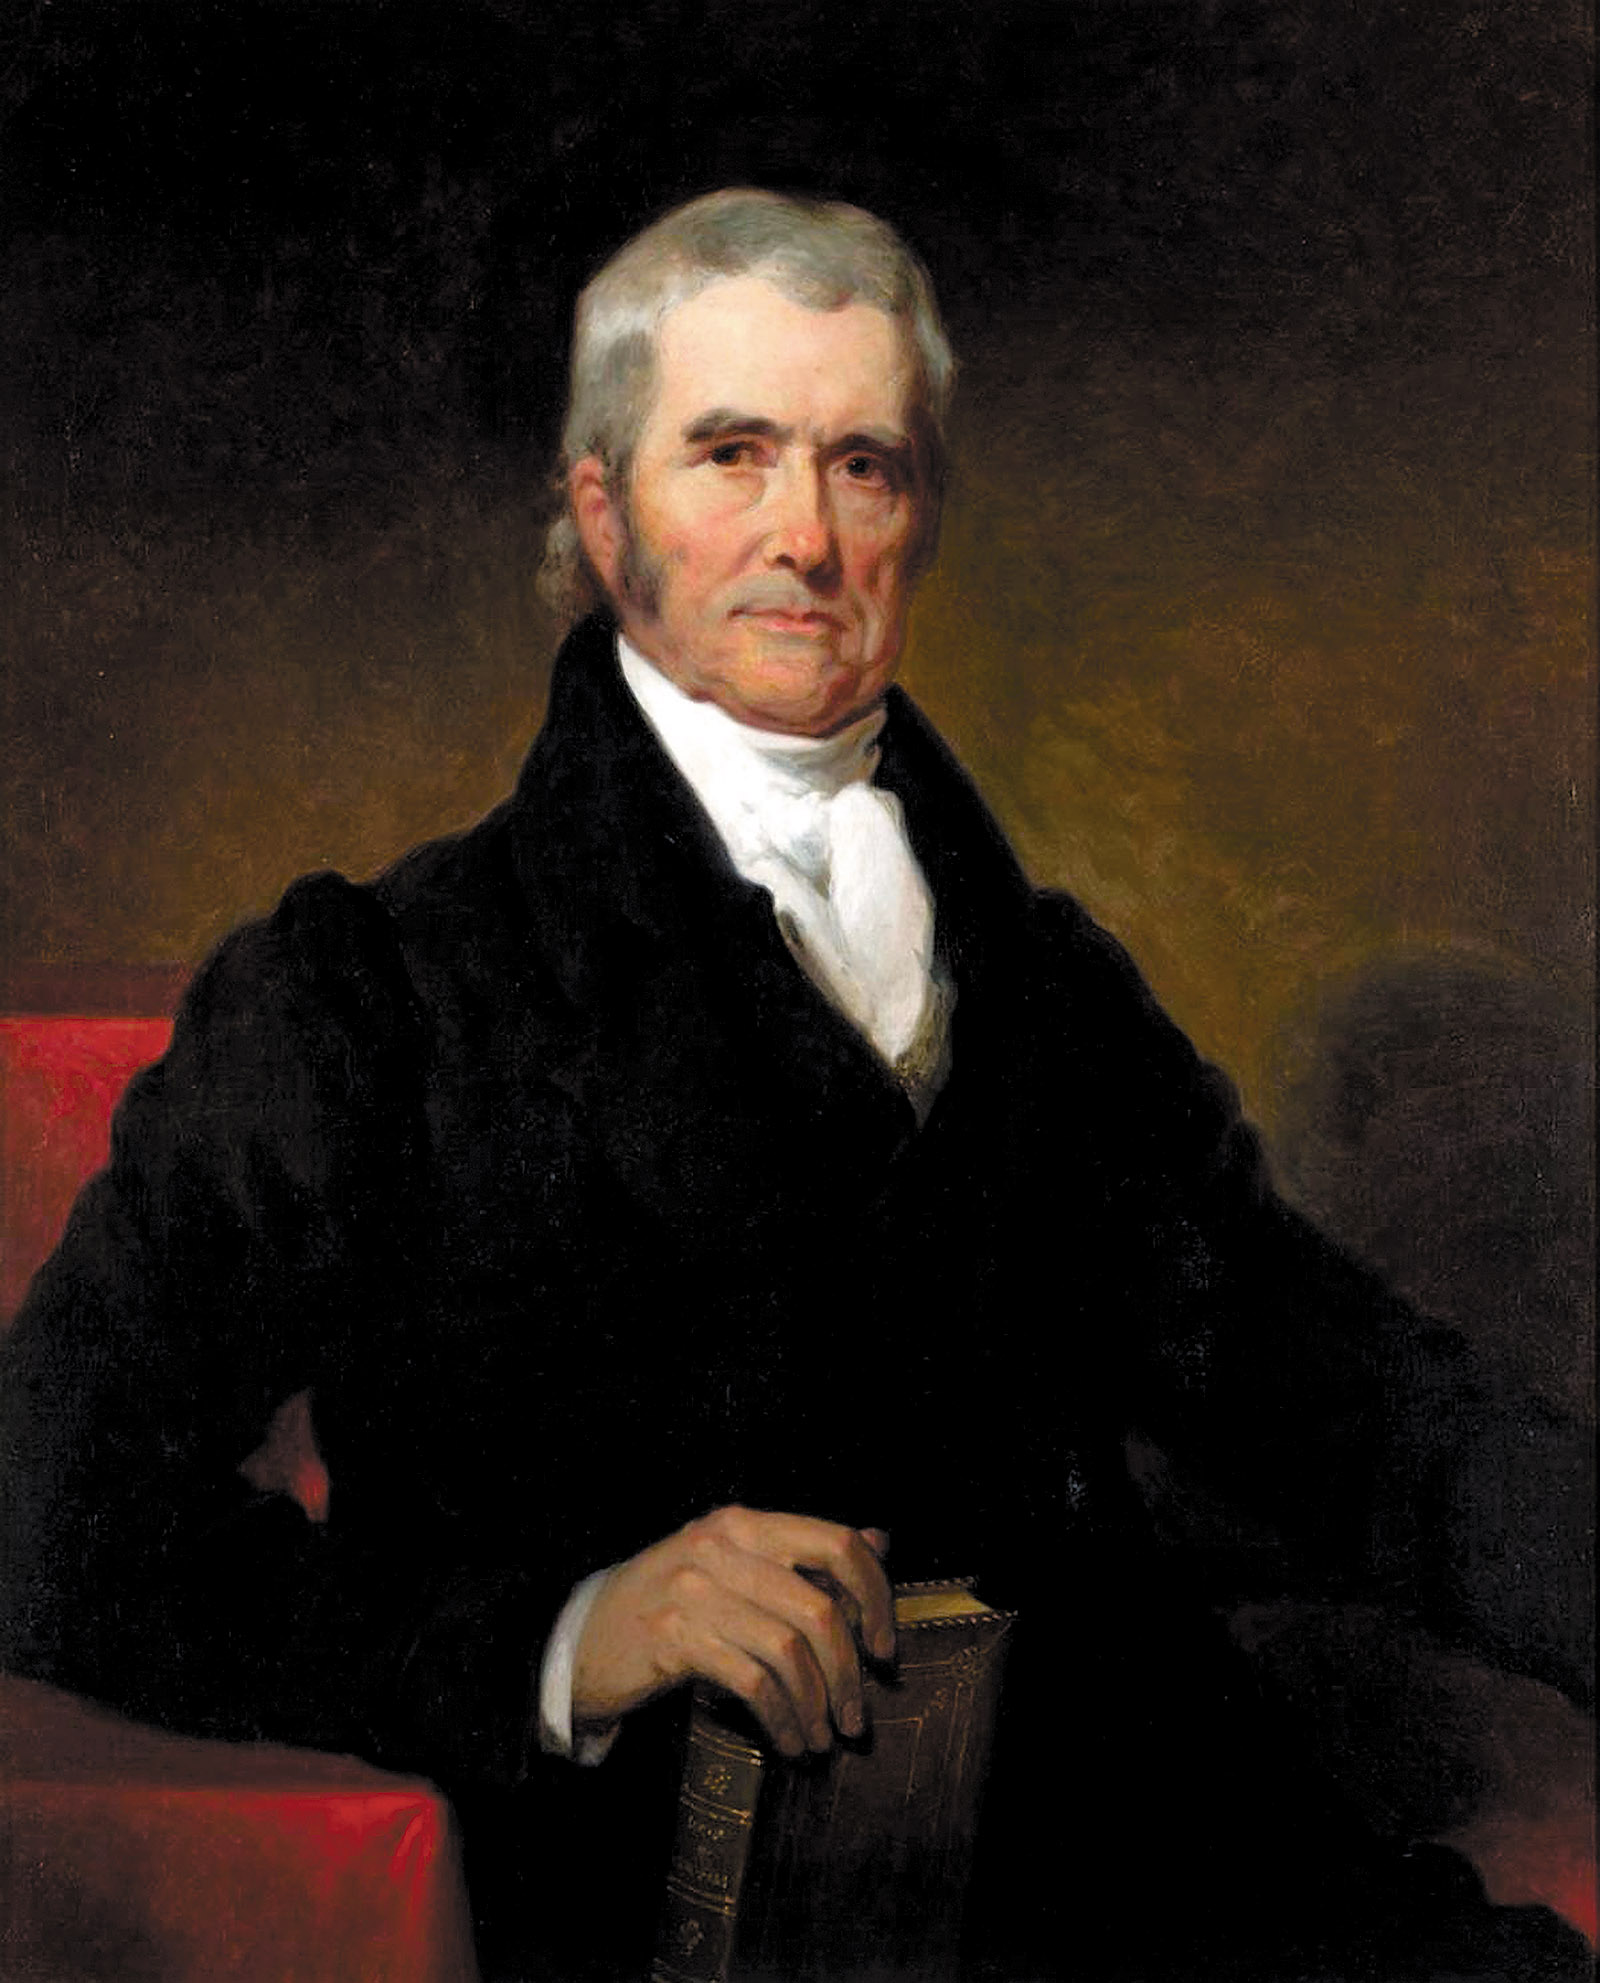 Supreme Court Chief Justice John Marshall; painting by Henry Inman, 1832